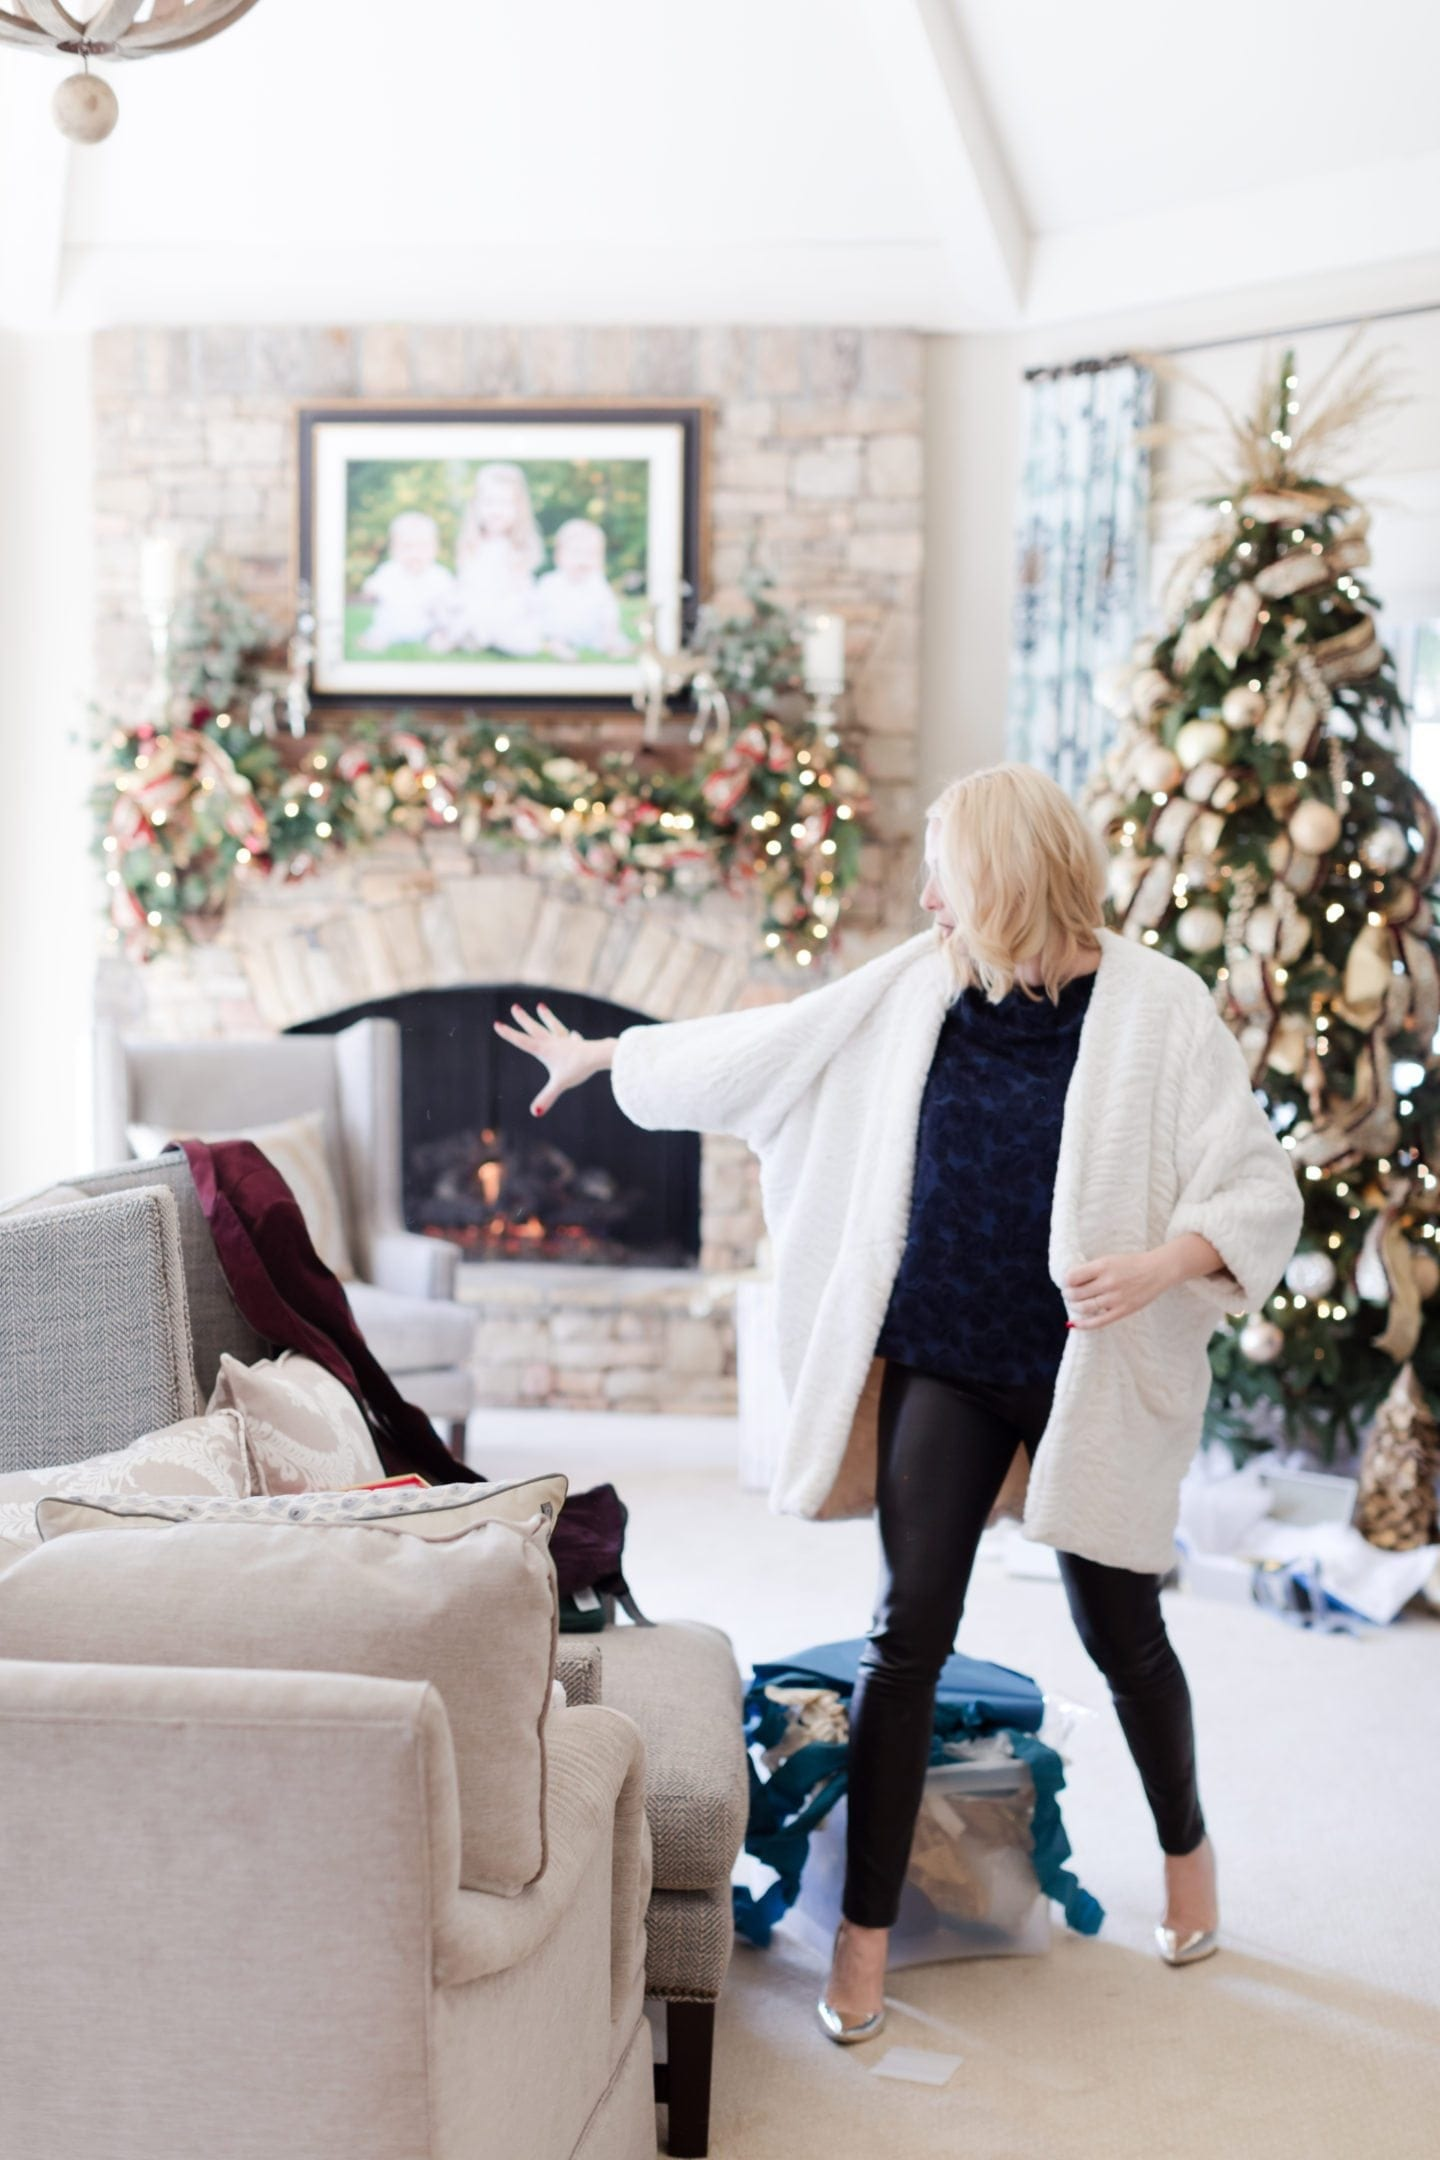 Blogs for Moms and women over 30. Christmas home ideas.